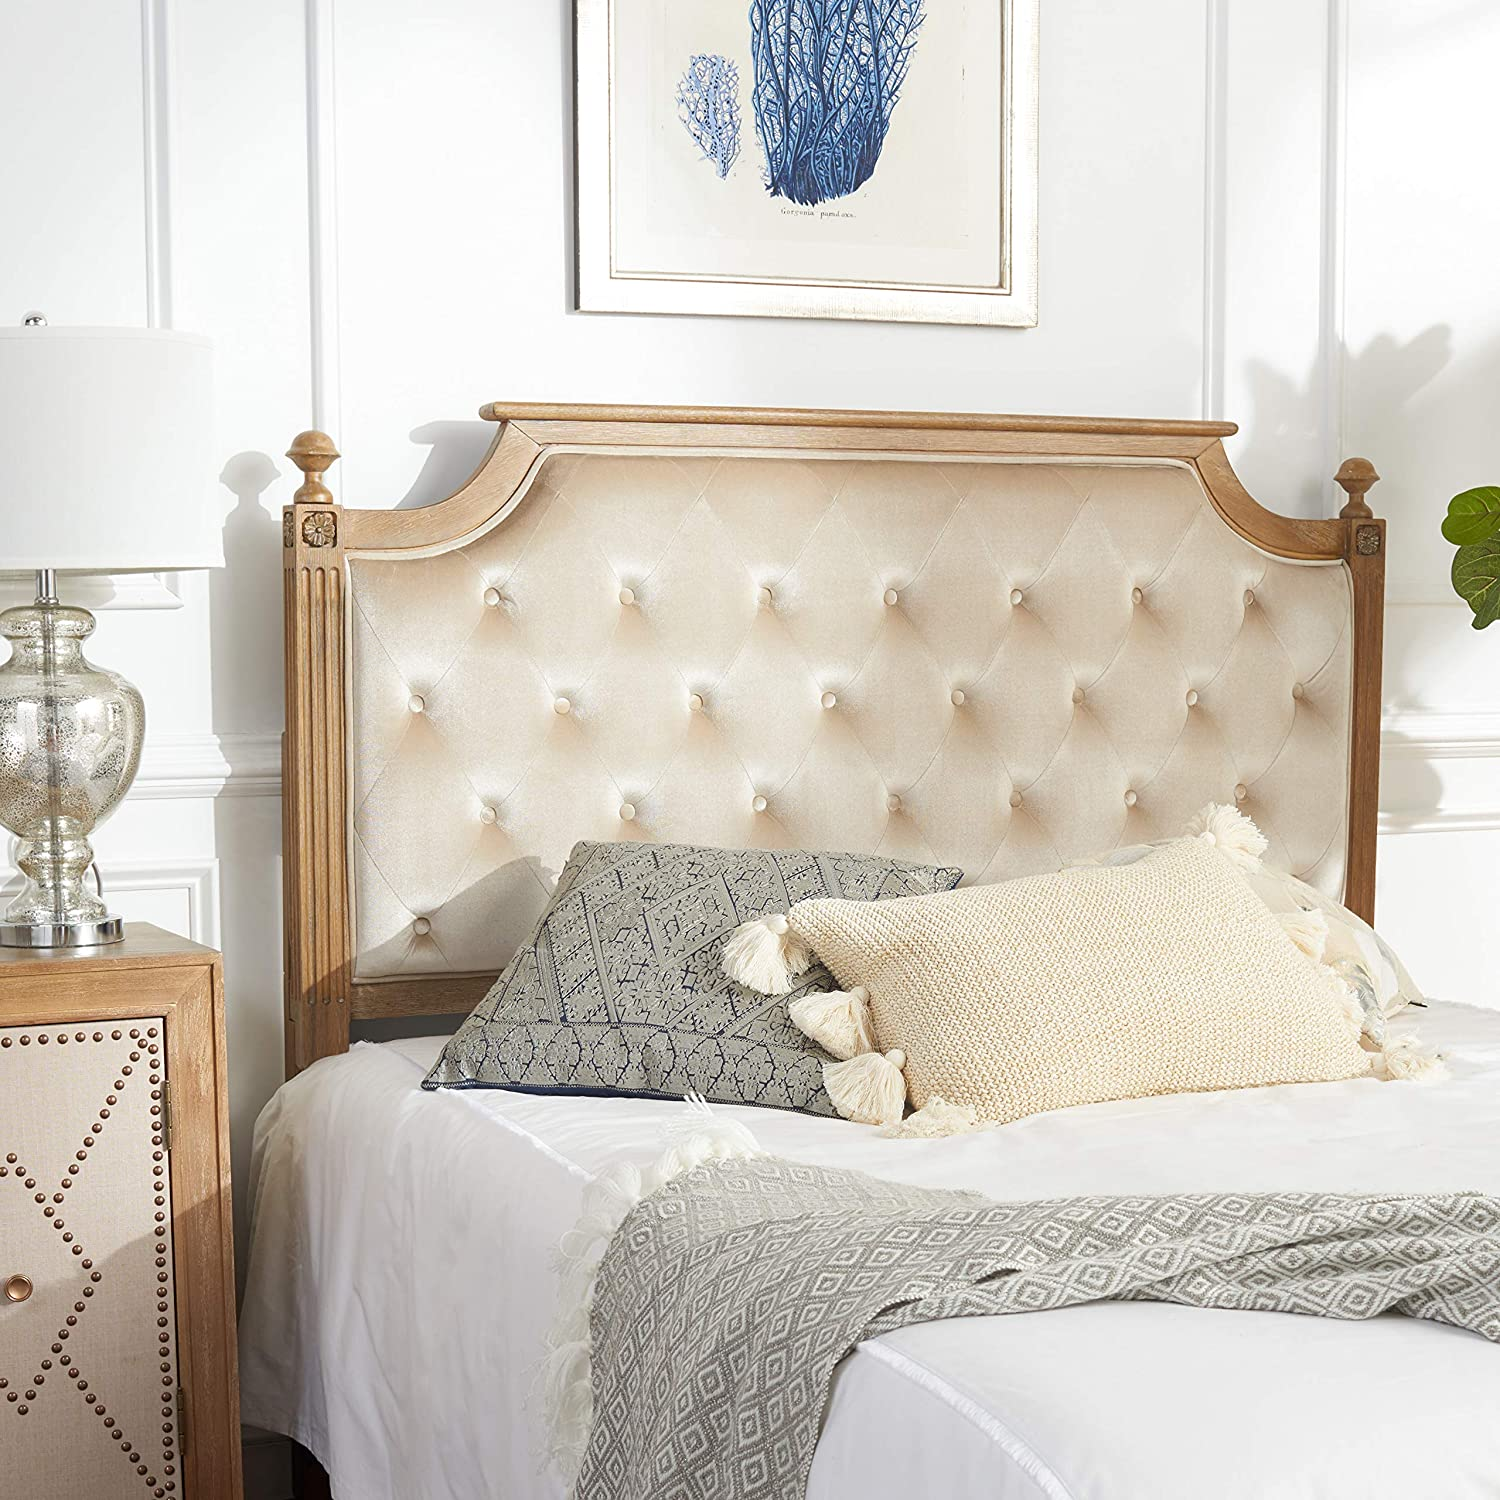 Safavieh Home Collection Tufted Linen Rustic Oak and Beige Headboard Twin